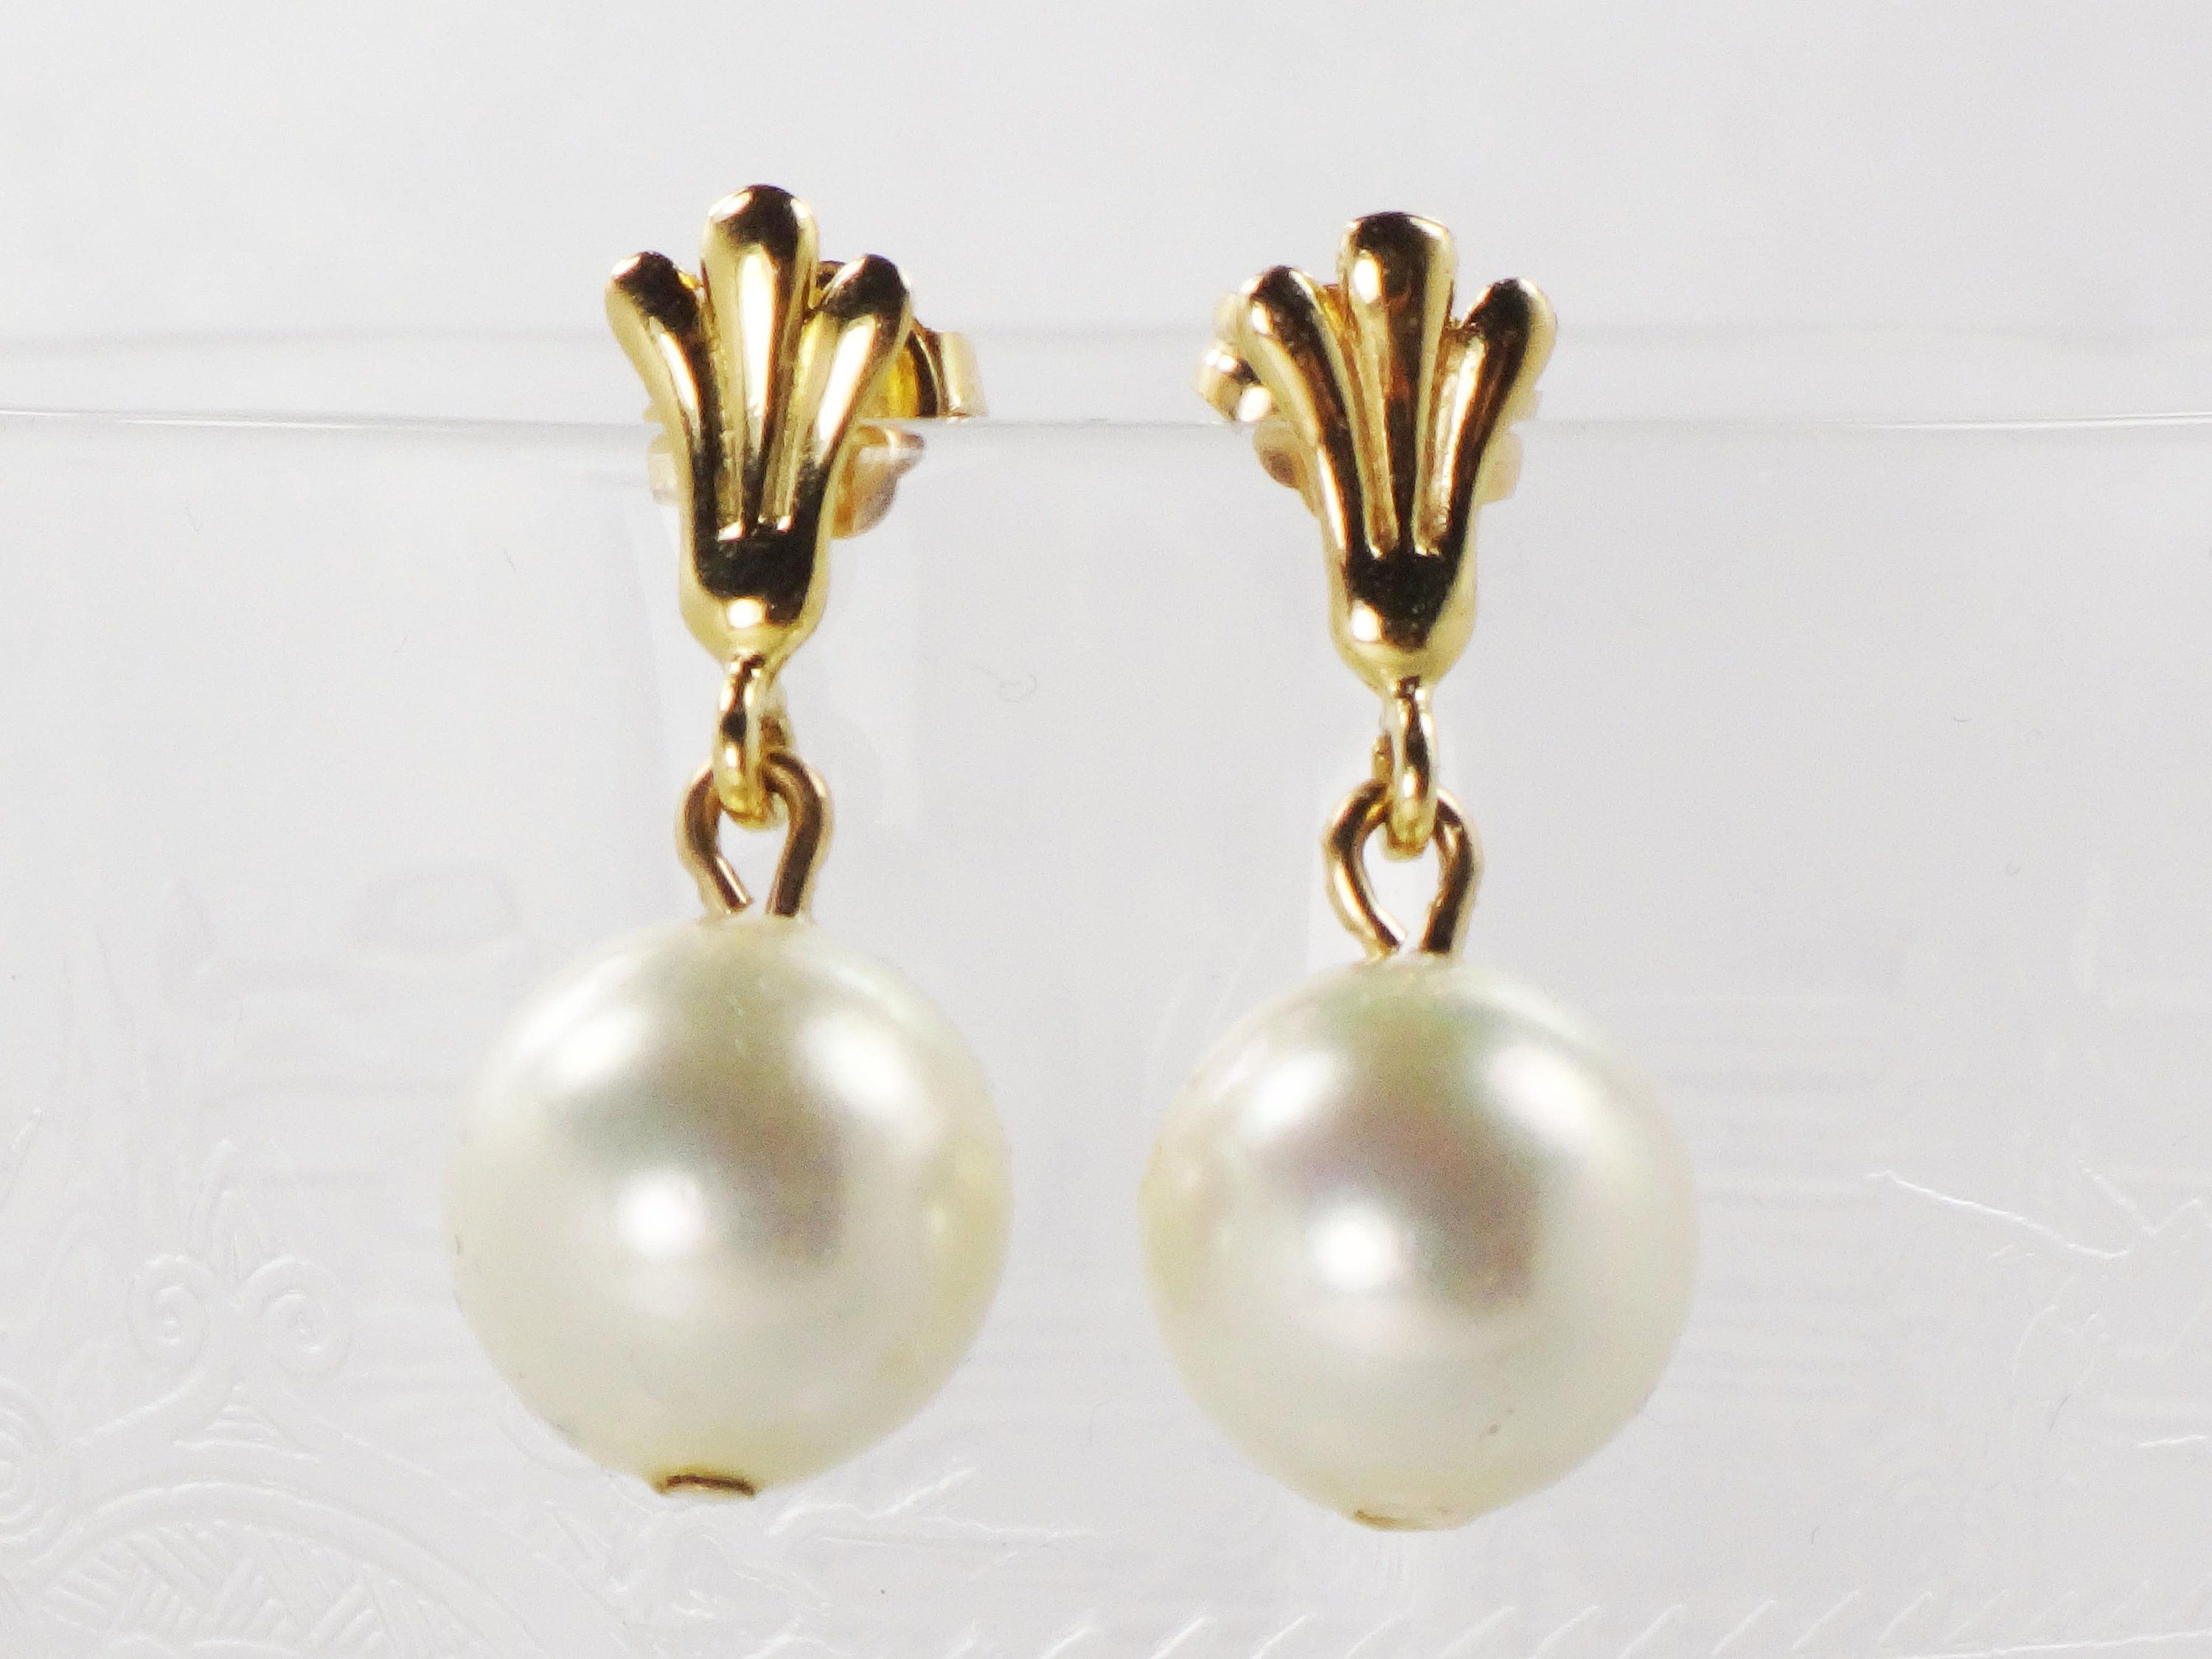 53775506d09af Vintage 14k Gold Imitation Pearl Earrings 14k Yellow Gold Dangle ...